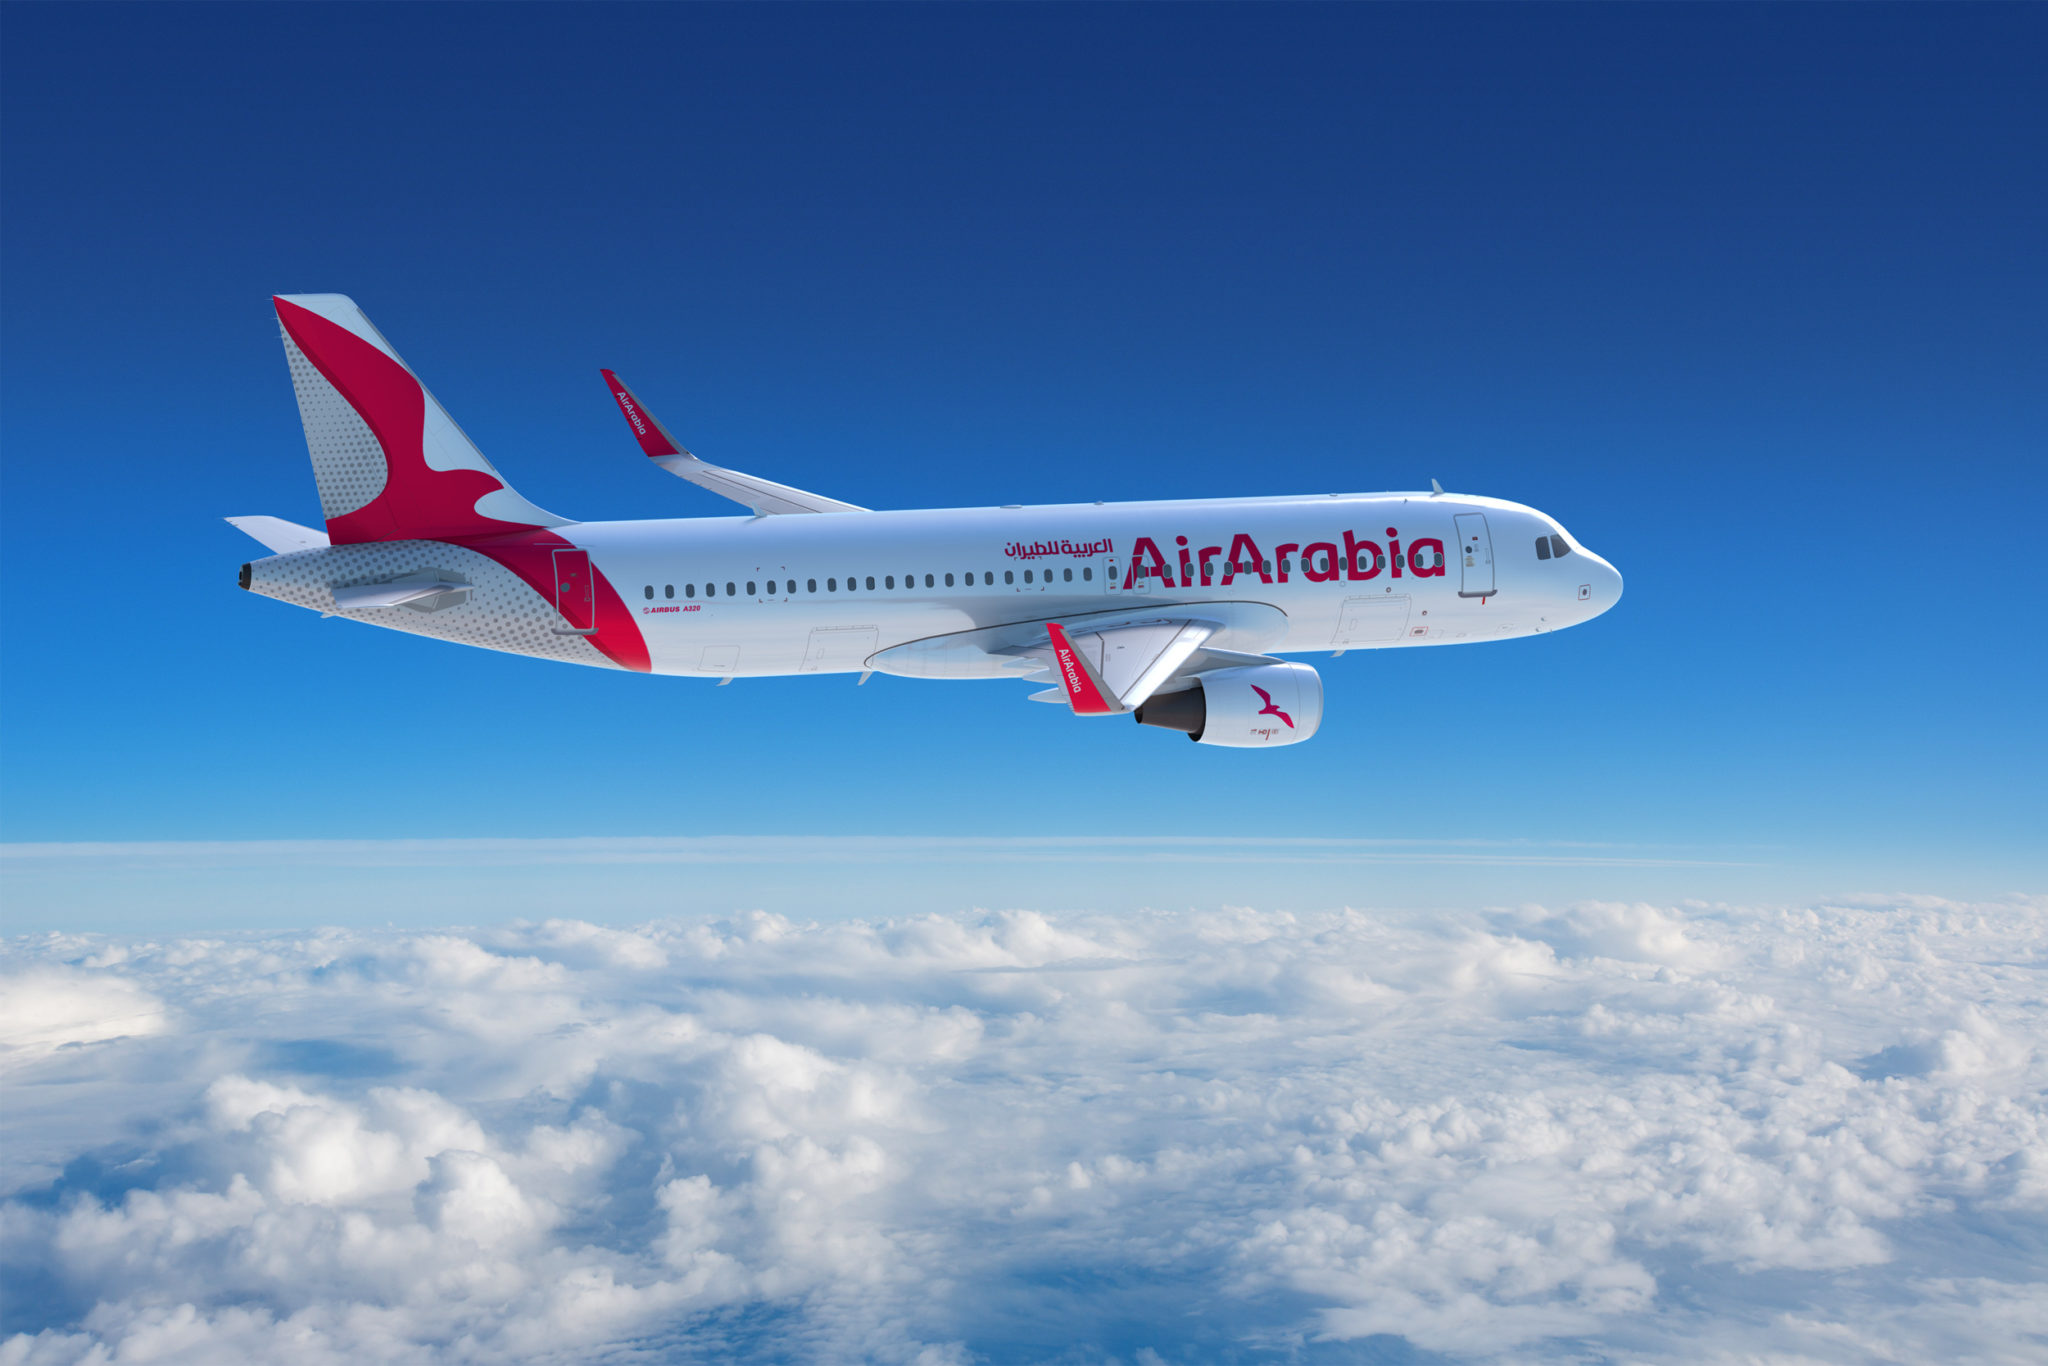 qatar,air,arabia,resume,daily,flights